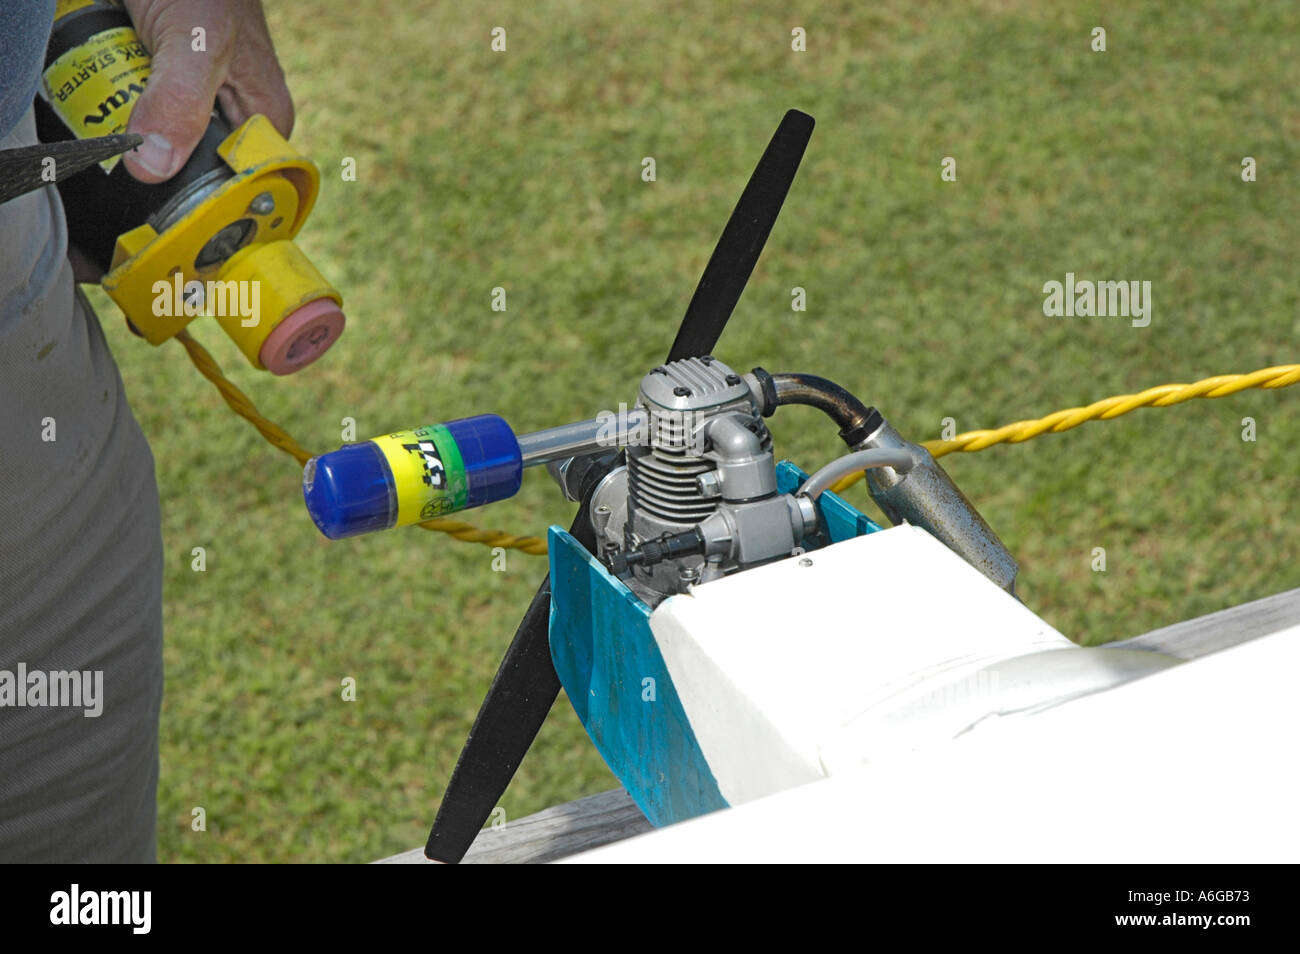 Remote Control airplanes flown as a hobby hand made by the